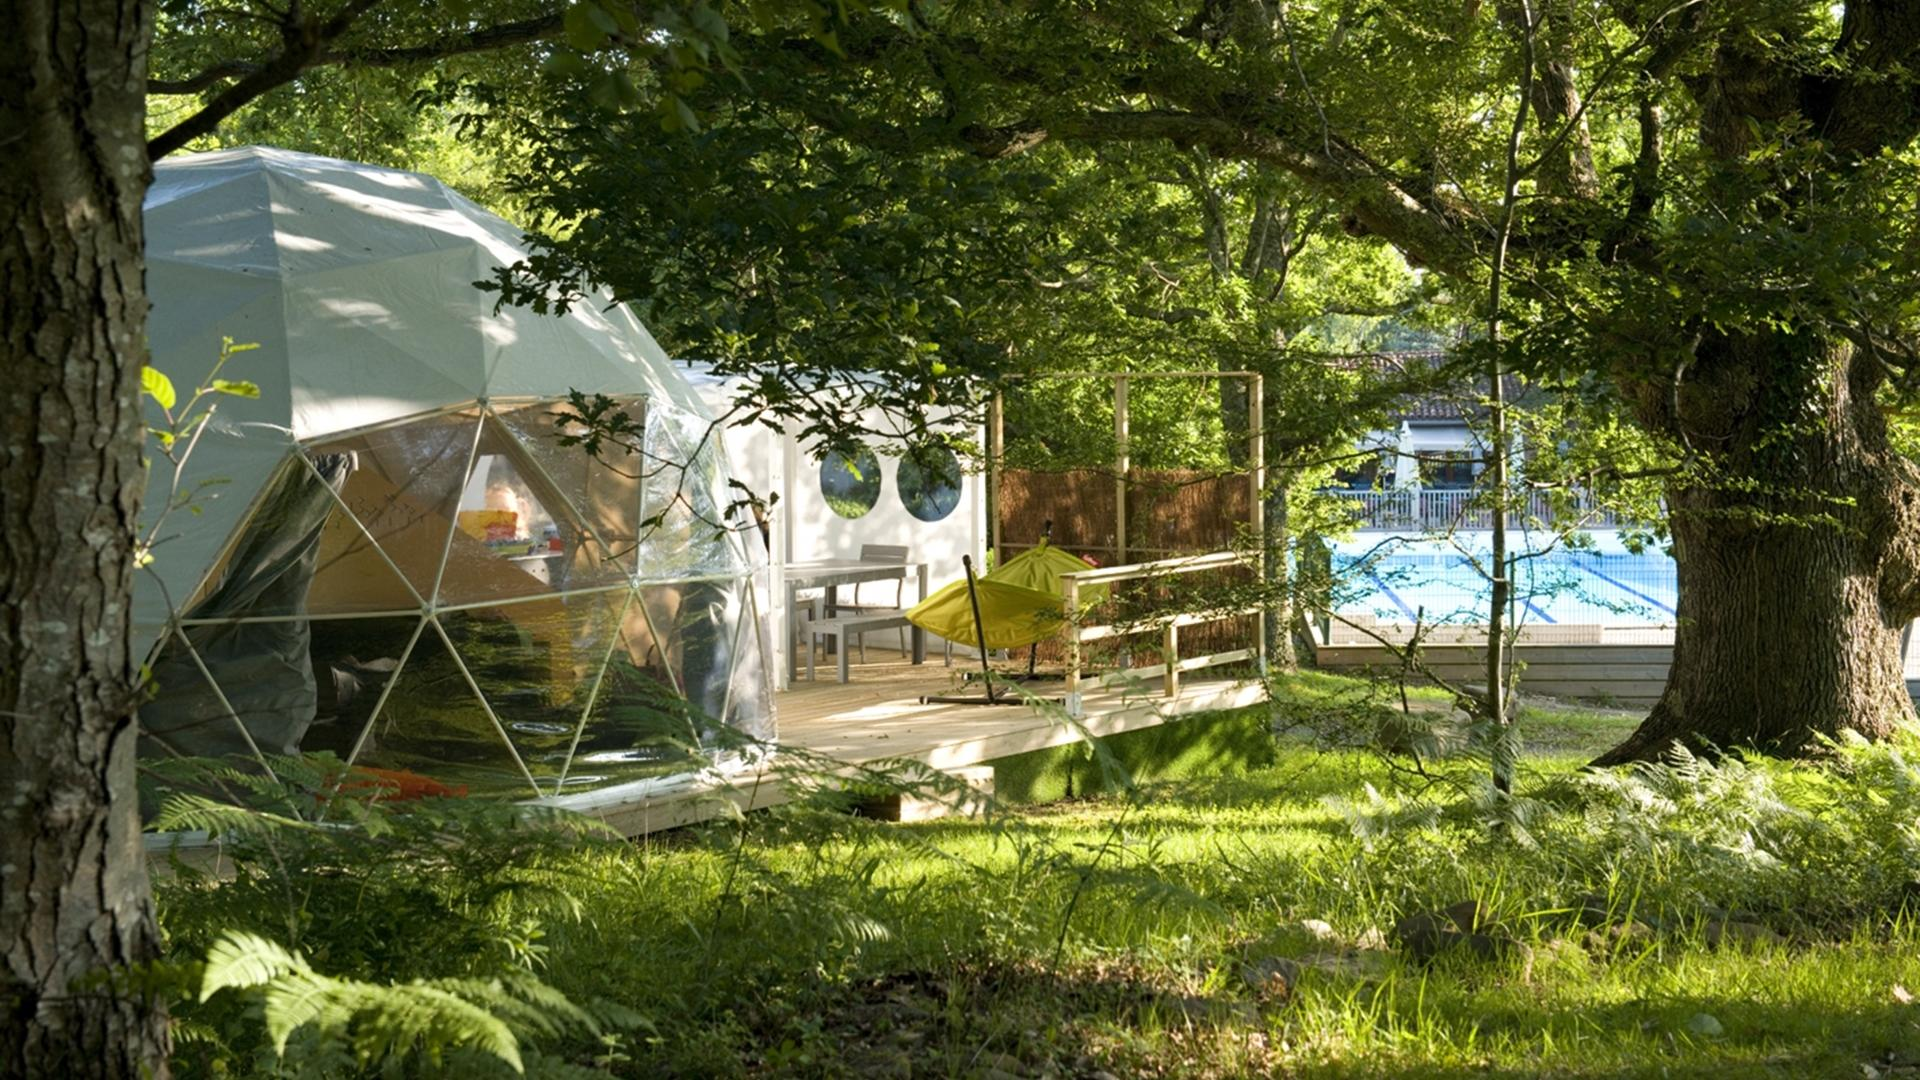 1 Bedroom Dome in Aquitaine, France